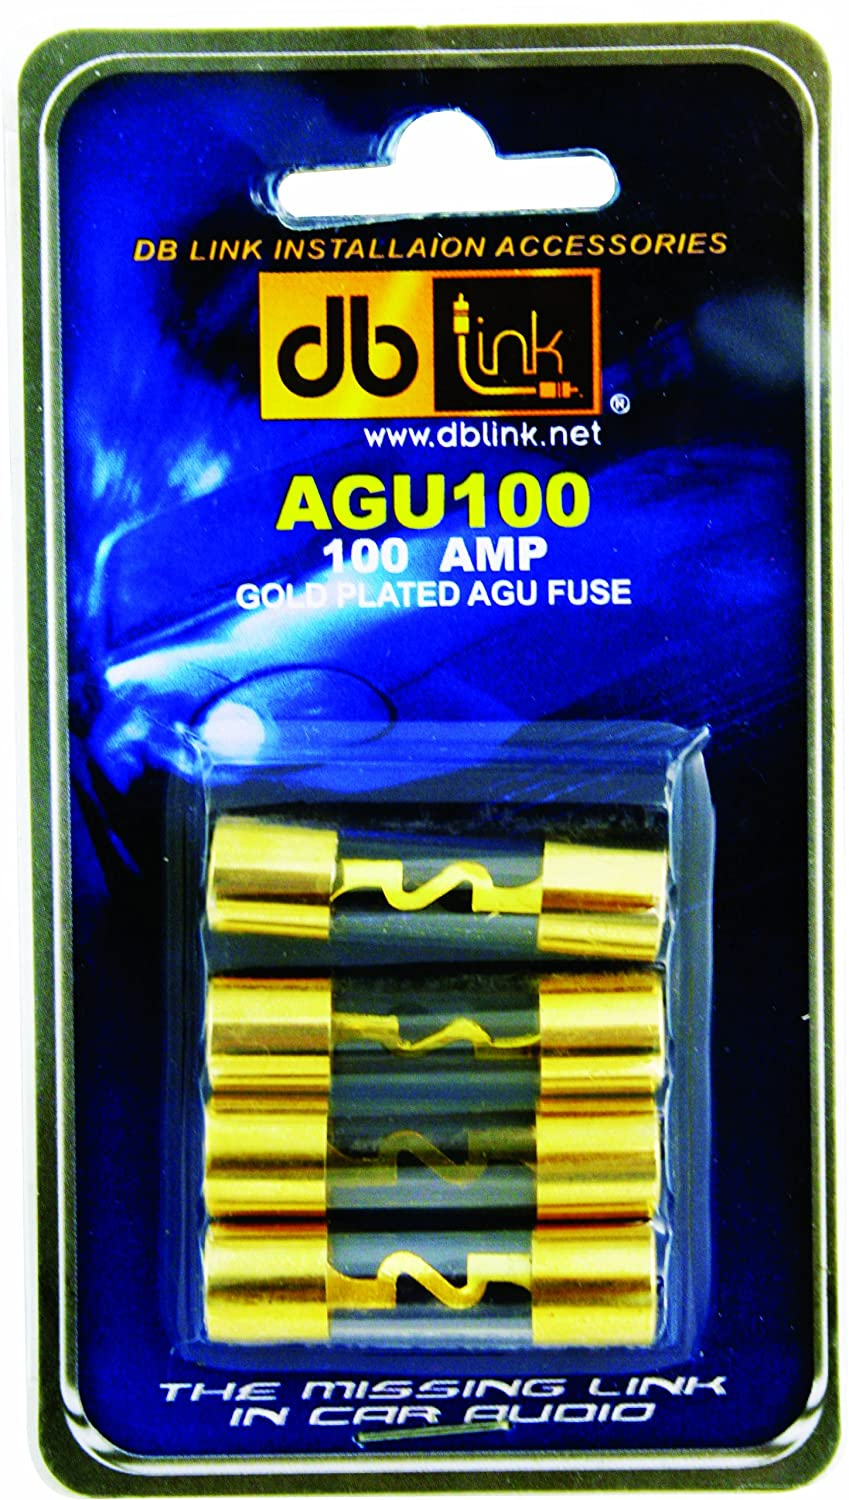 91hP1h3 CKL._SL1500_ amazon com db link agu100 gold agu 100 amp fuses car electronics 200 Amp Fuse Box at soozxer.org